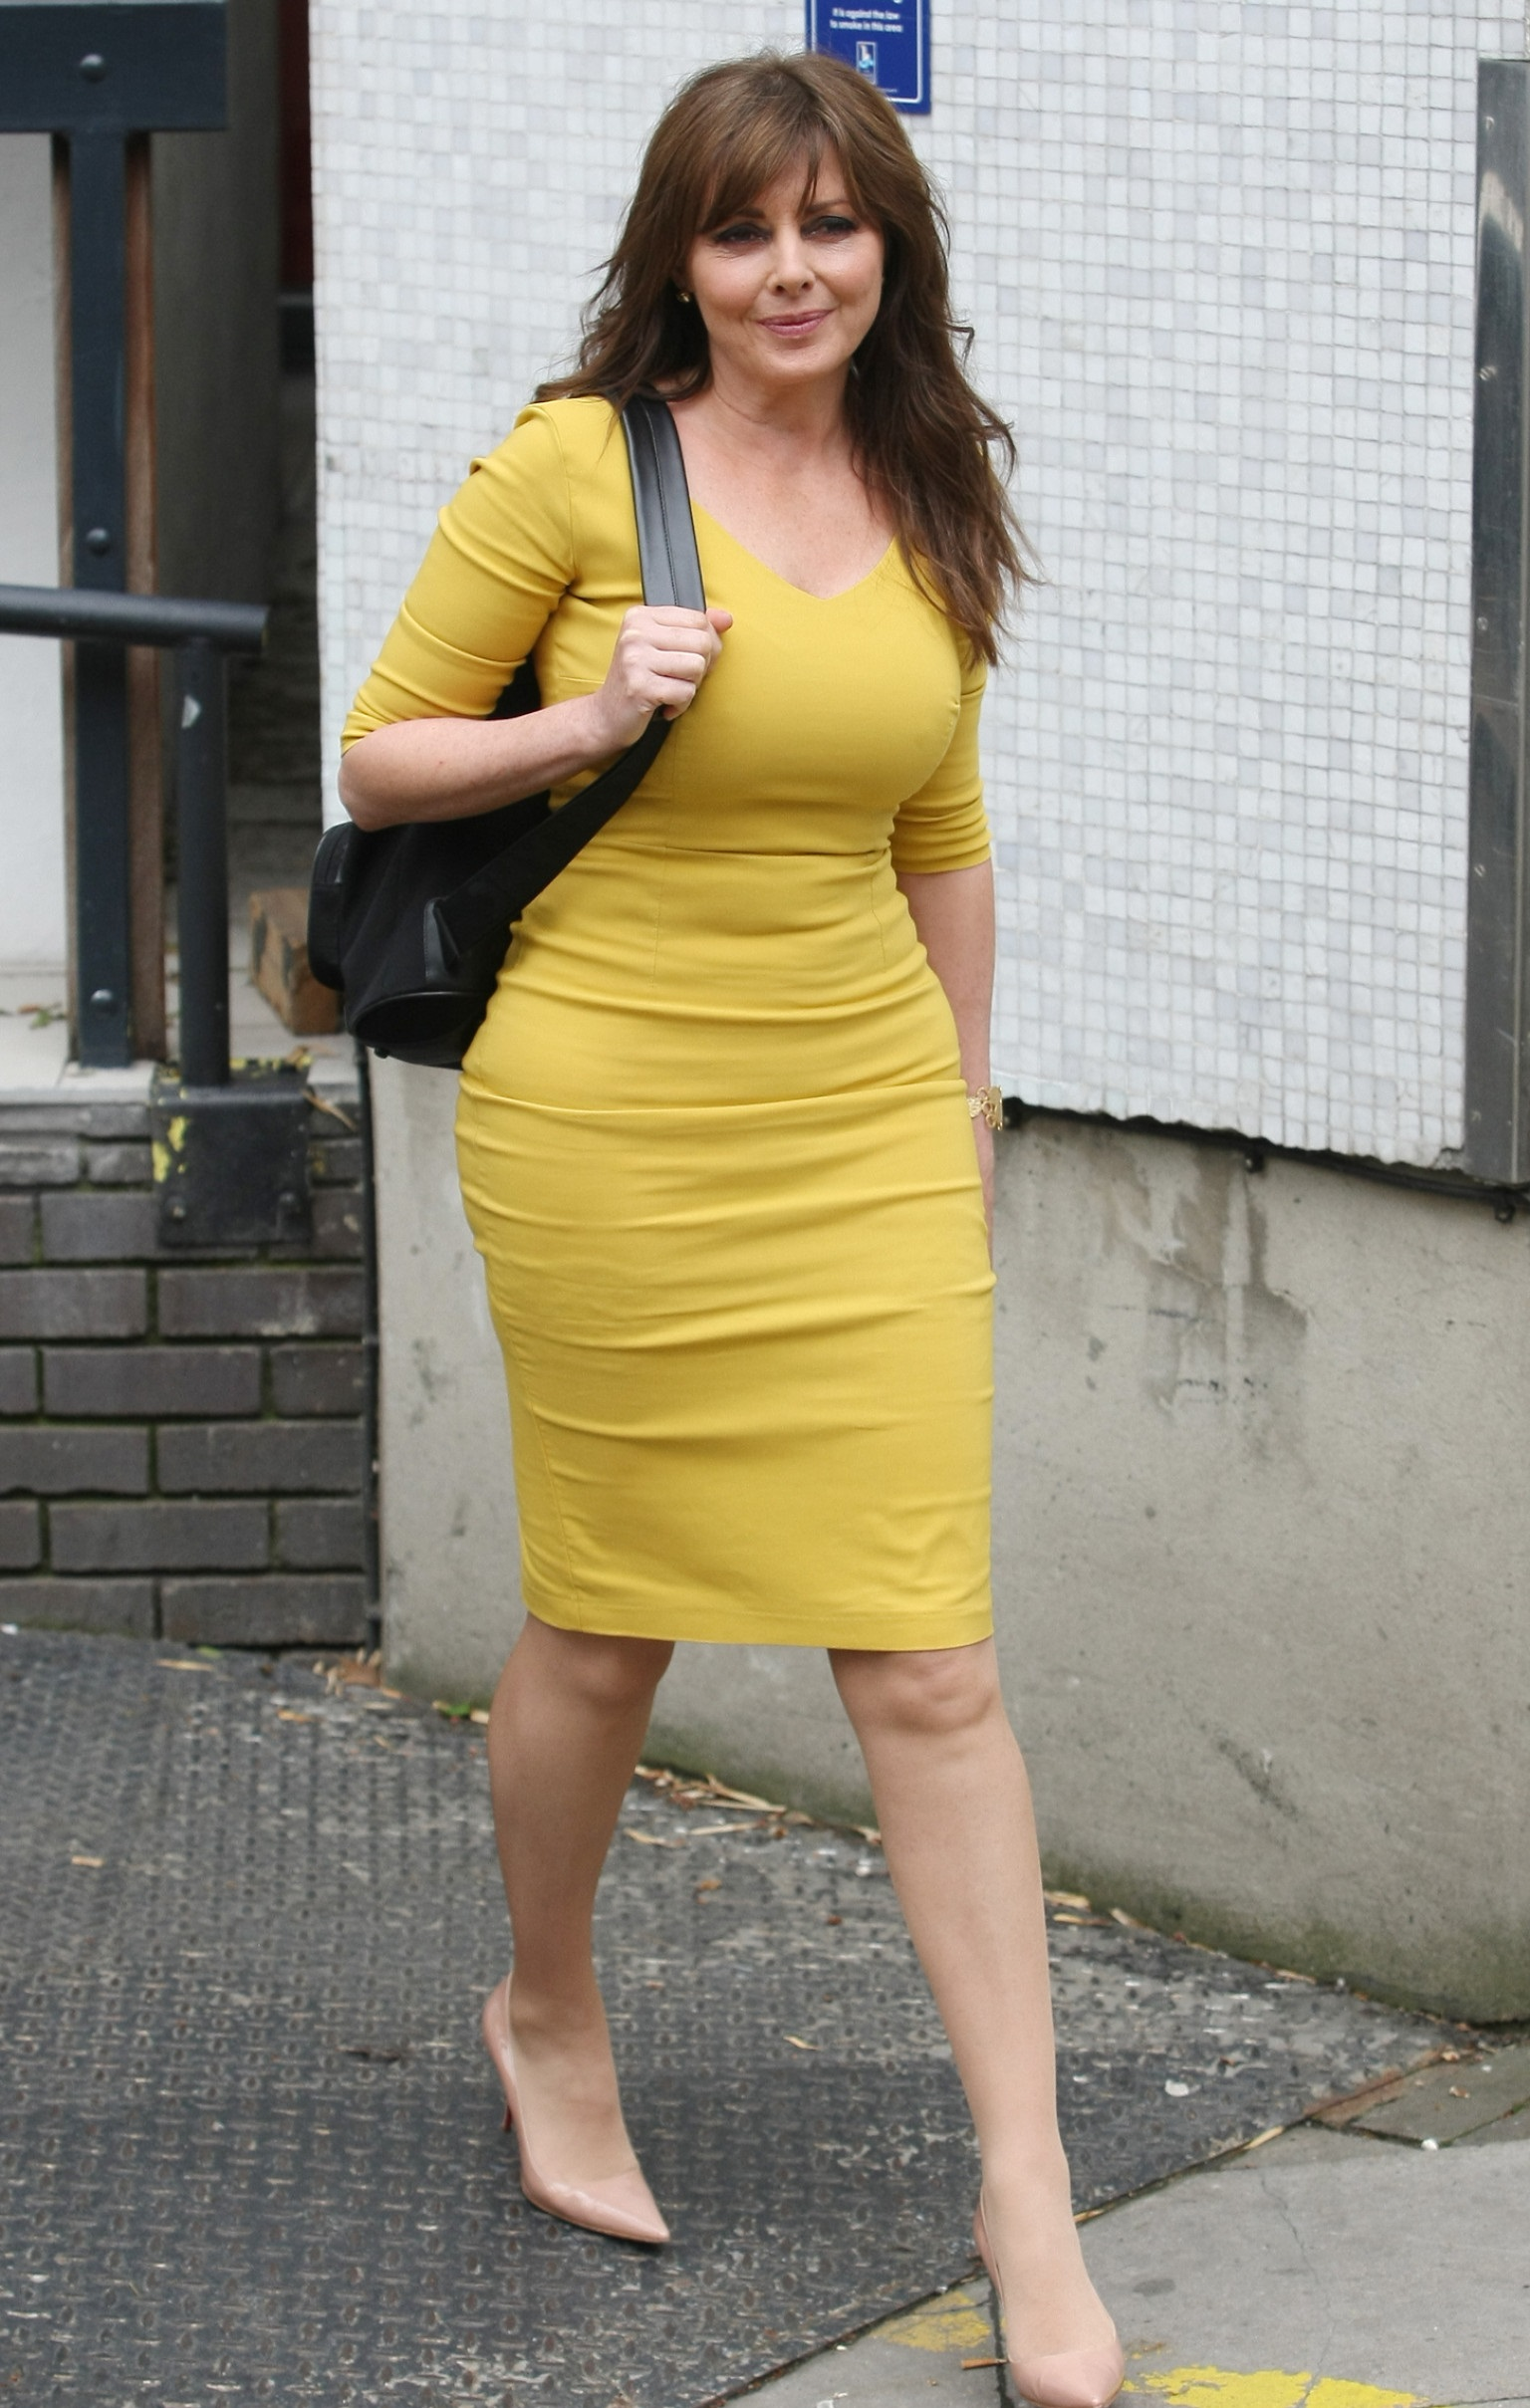 Celebrities outside the ITV Studios Featuring: Carol Vorderman Where: London, United Kingdom When: 08 May 2013 Credit: WENN.com